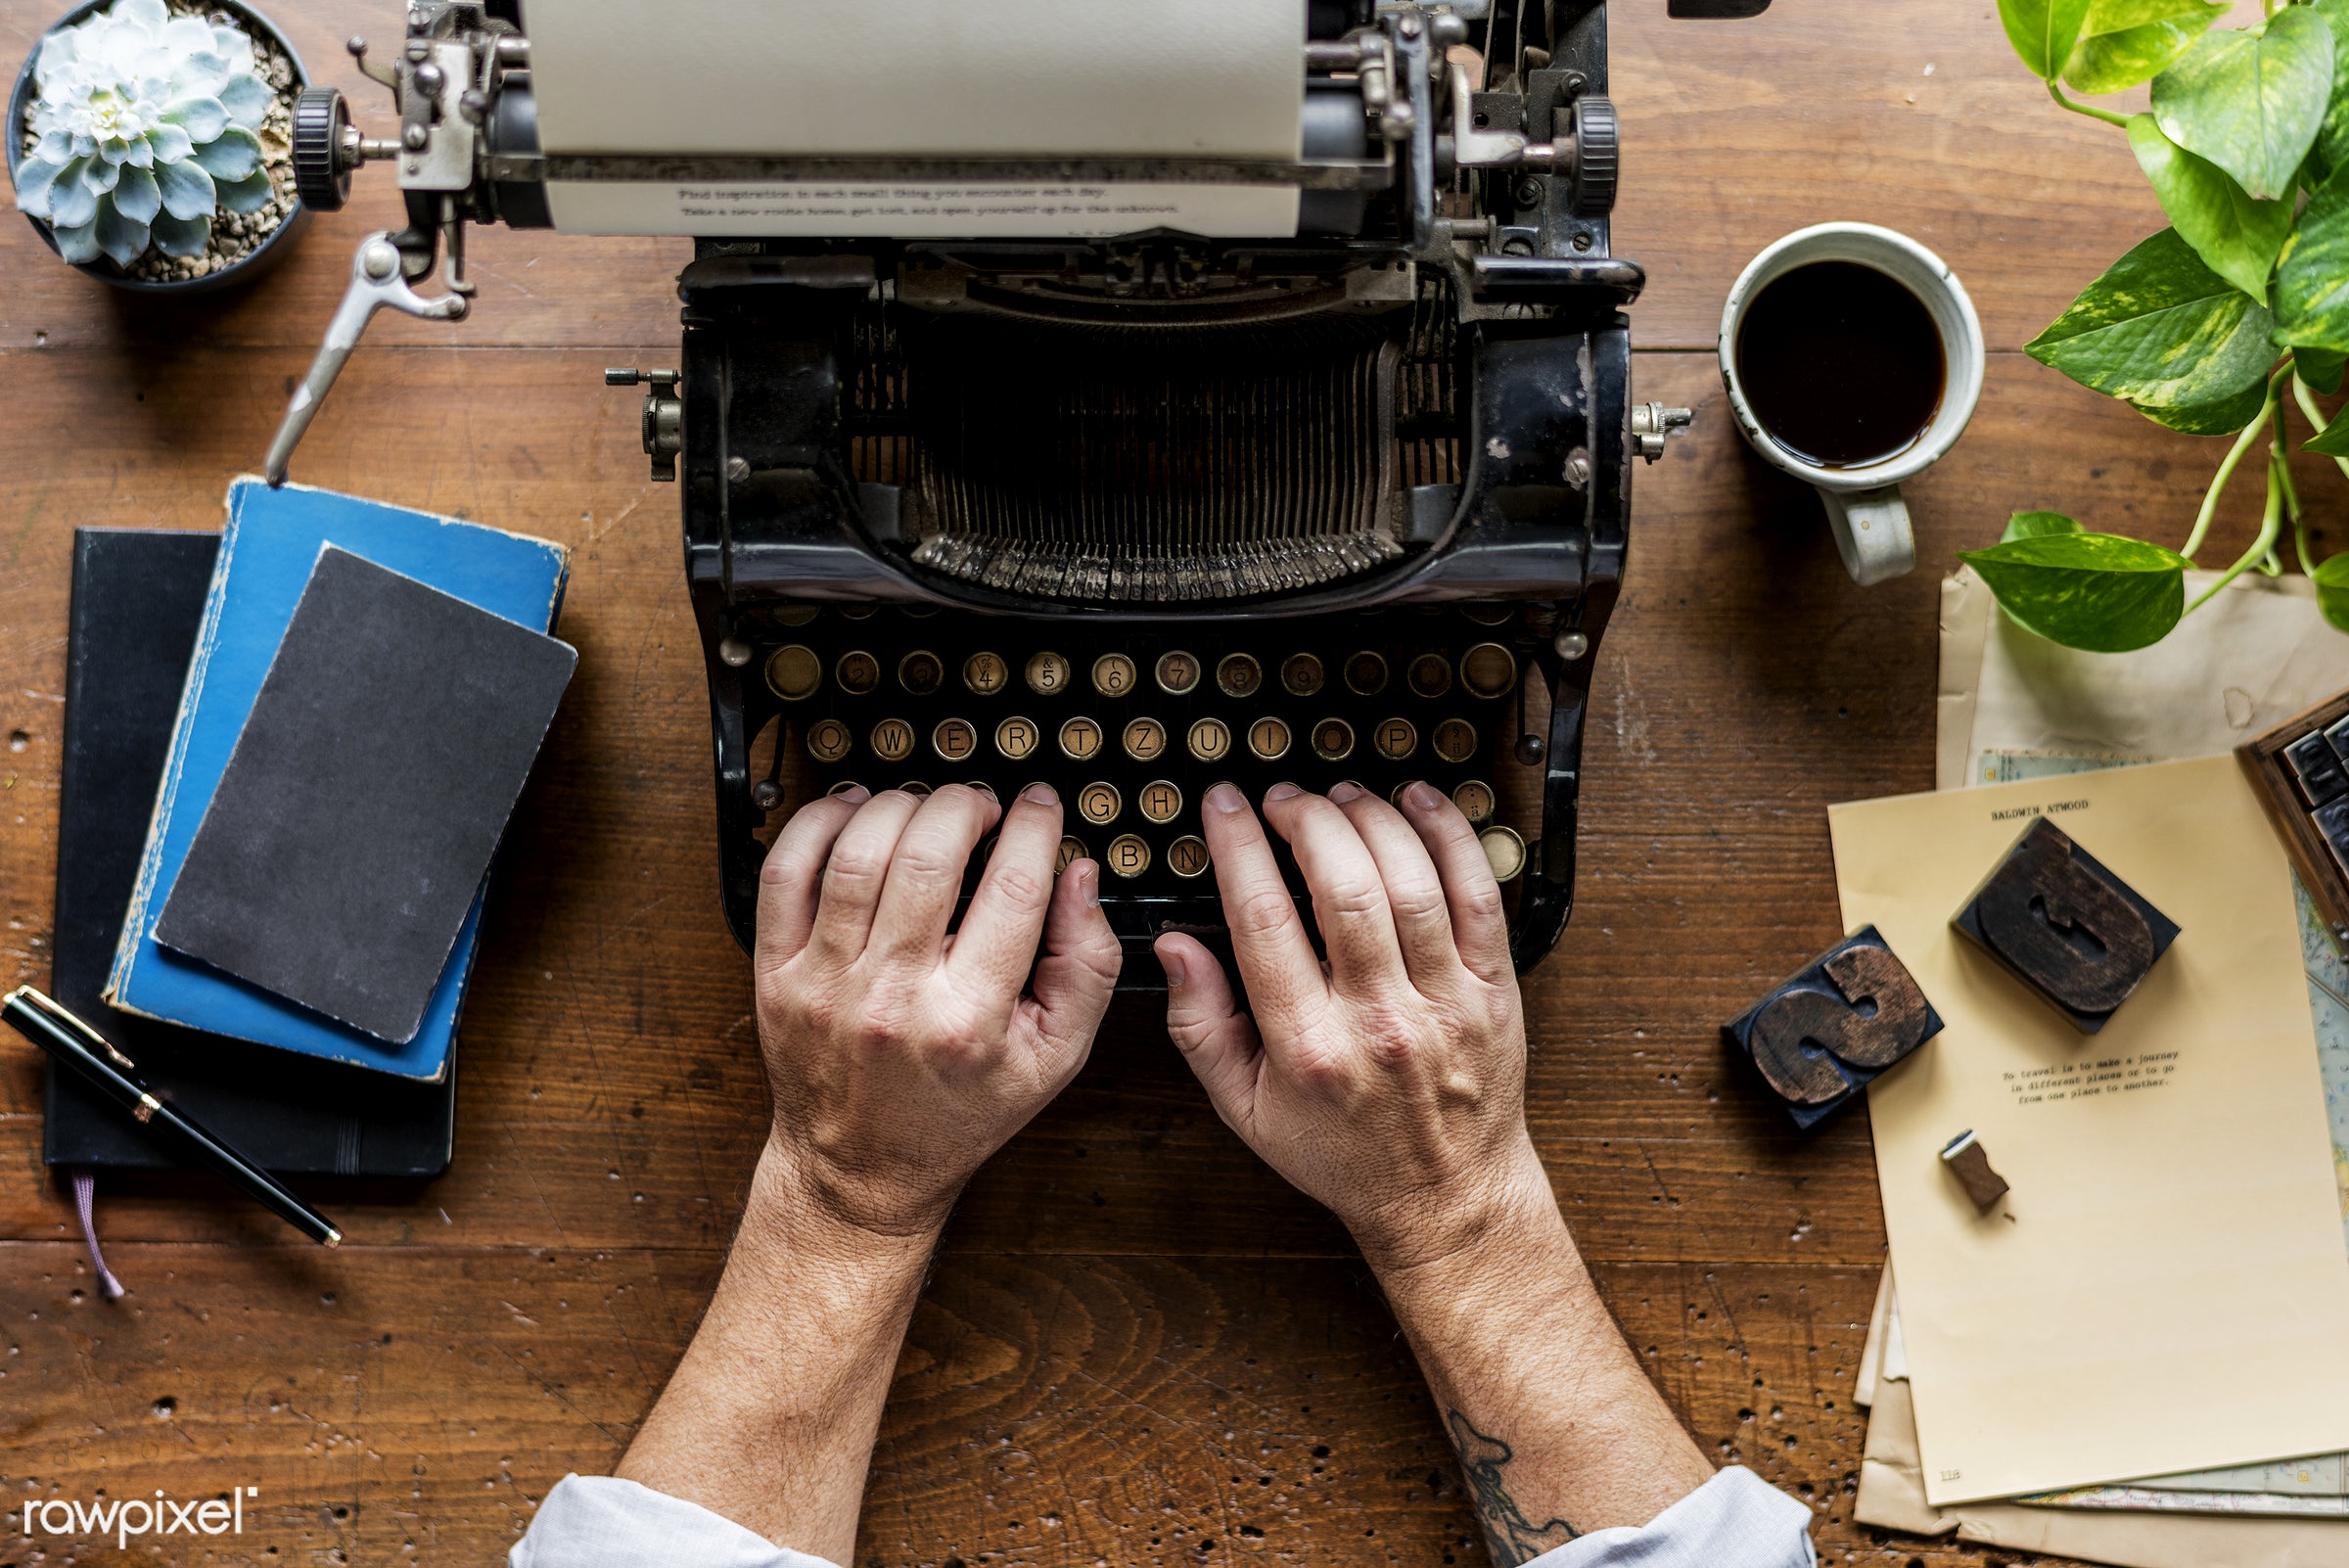 plant, workspace, paper, retro, workplace, drinks, hands, typewriter, typing, working, aerial view, classic, note,...